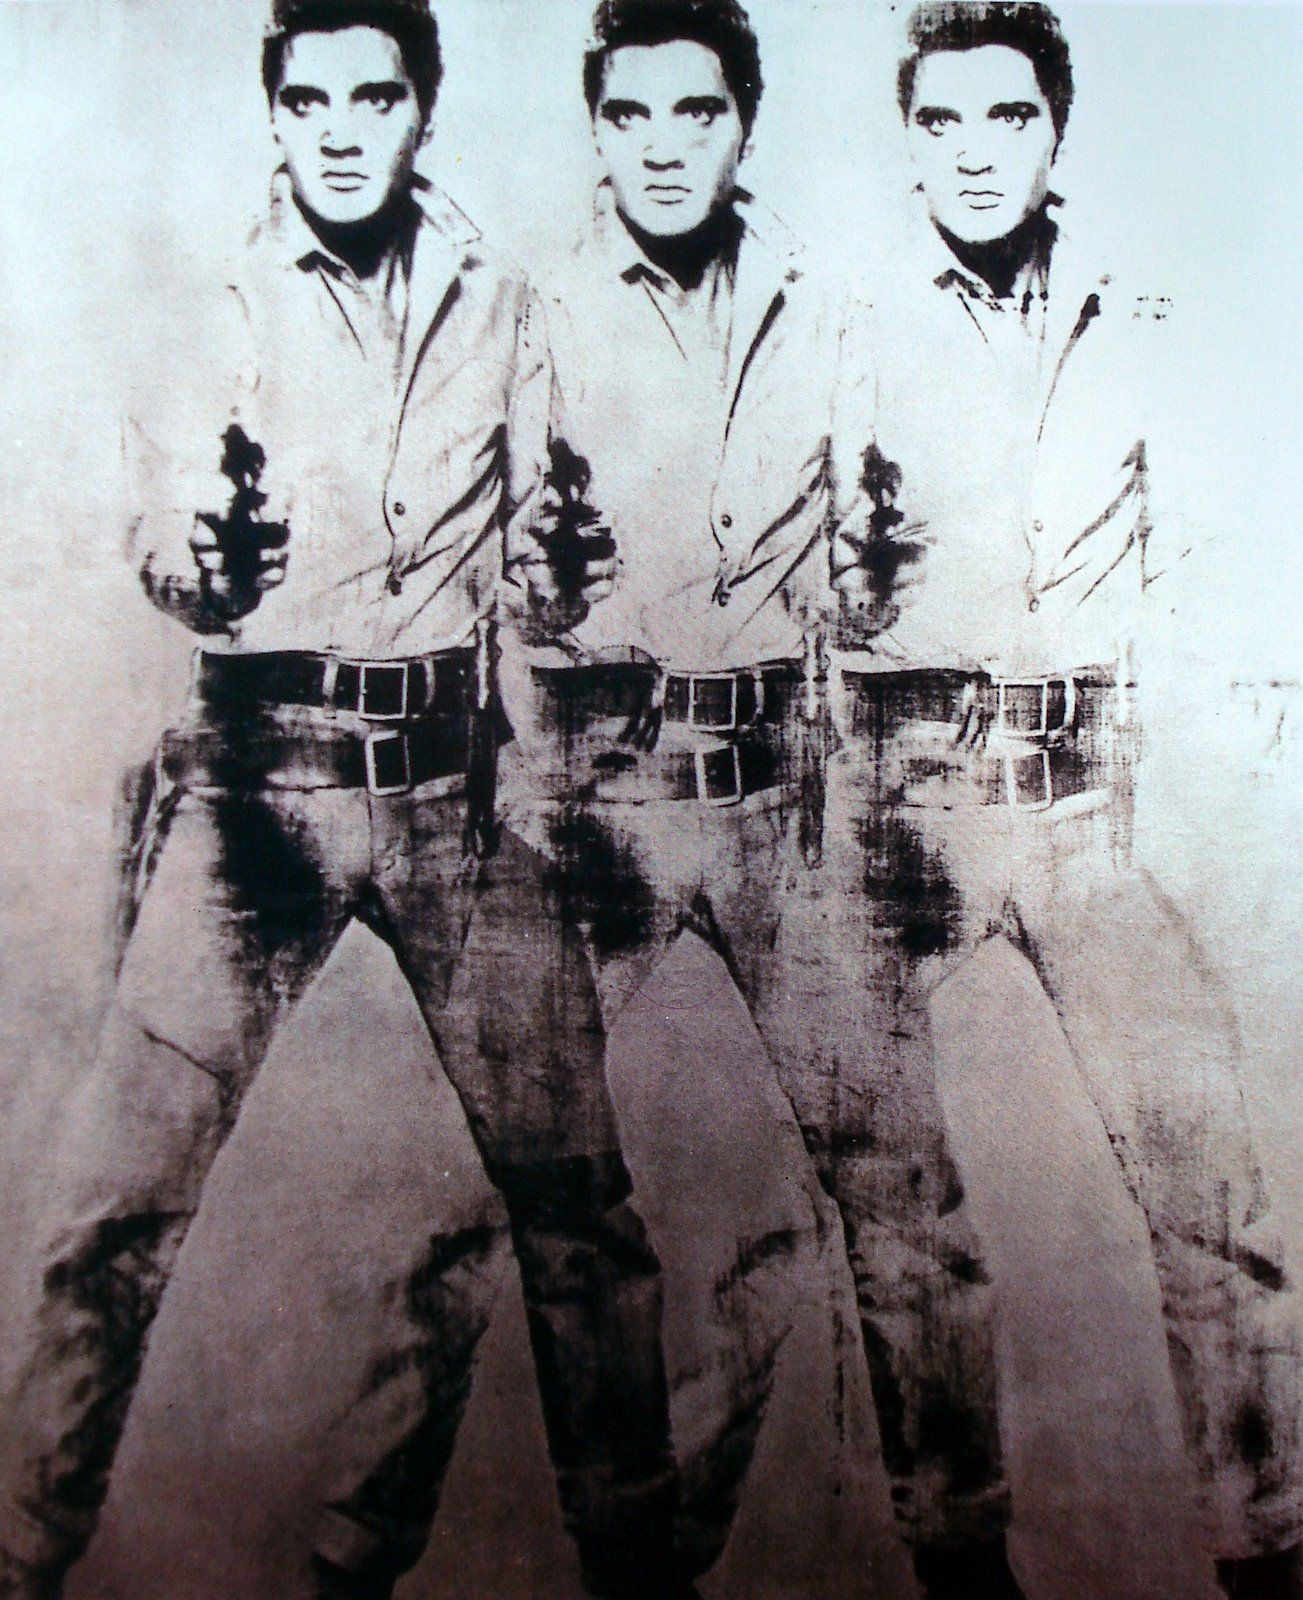 andy warhol on pinterest warhol robert mapplethorpe and